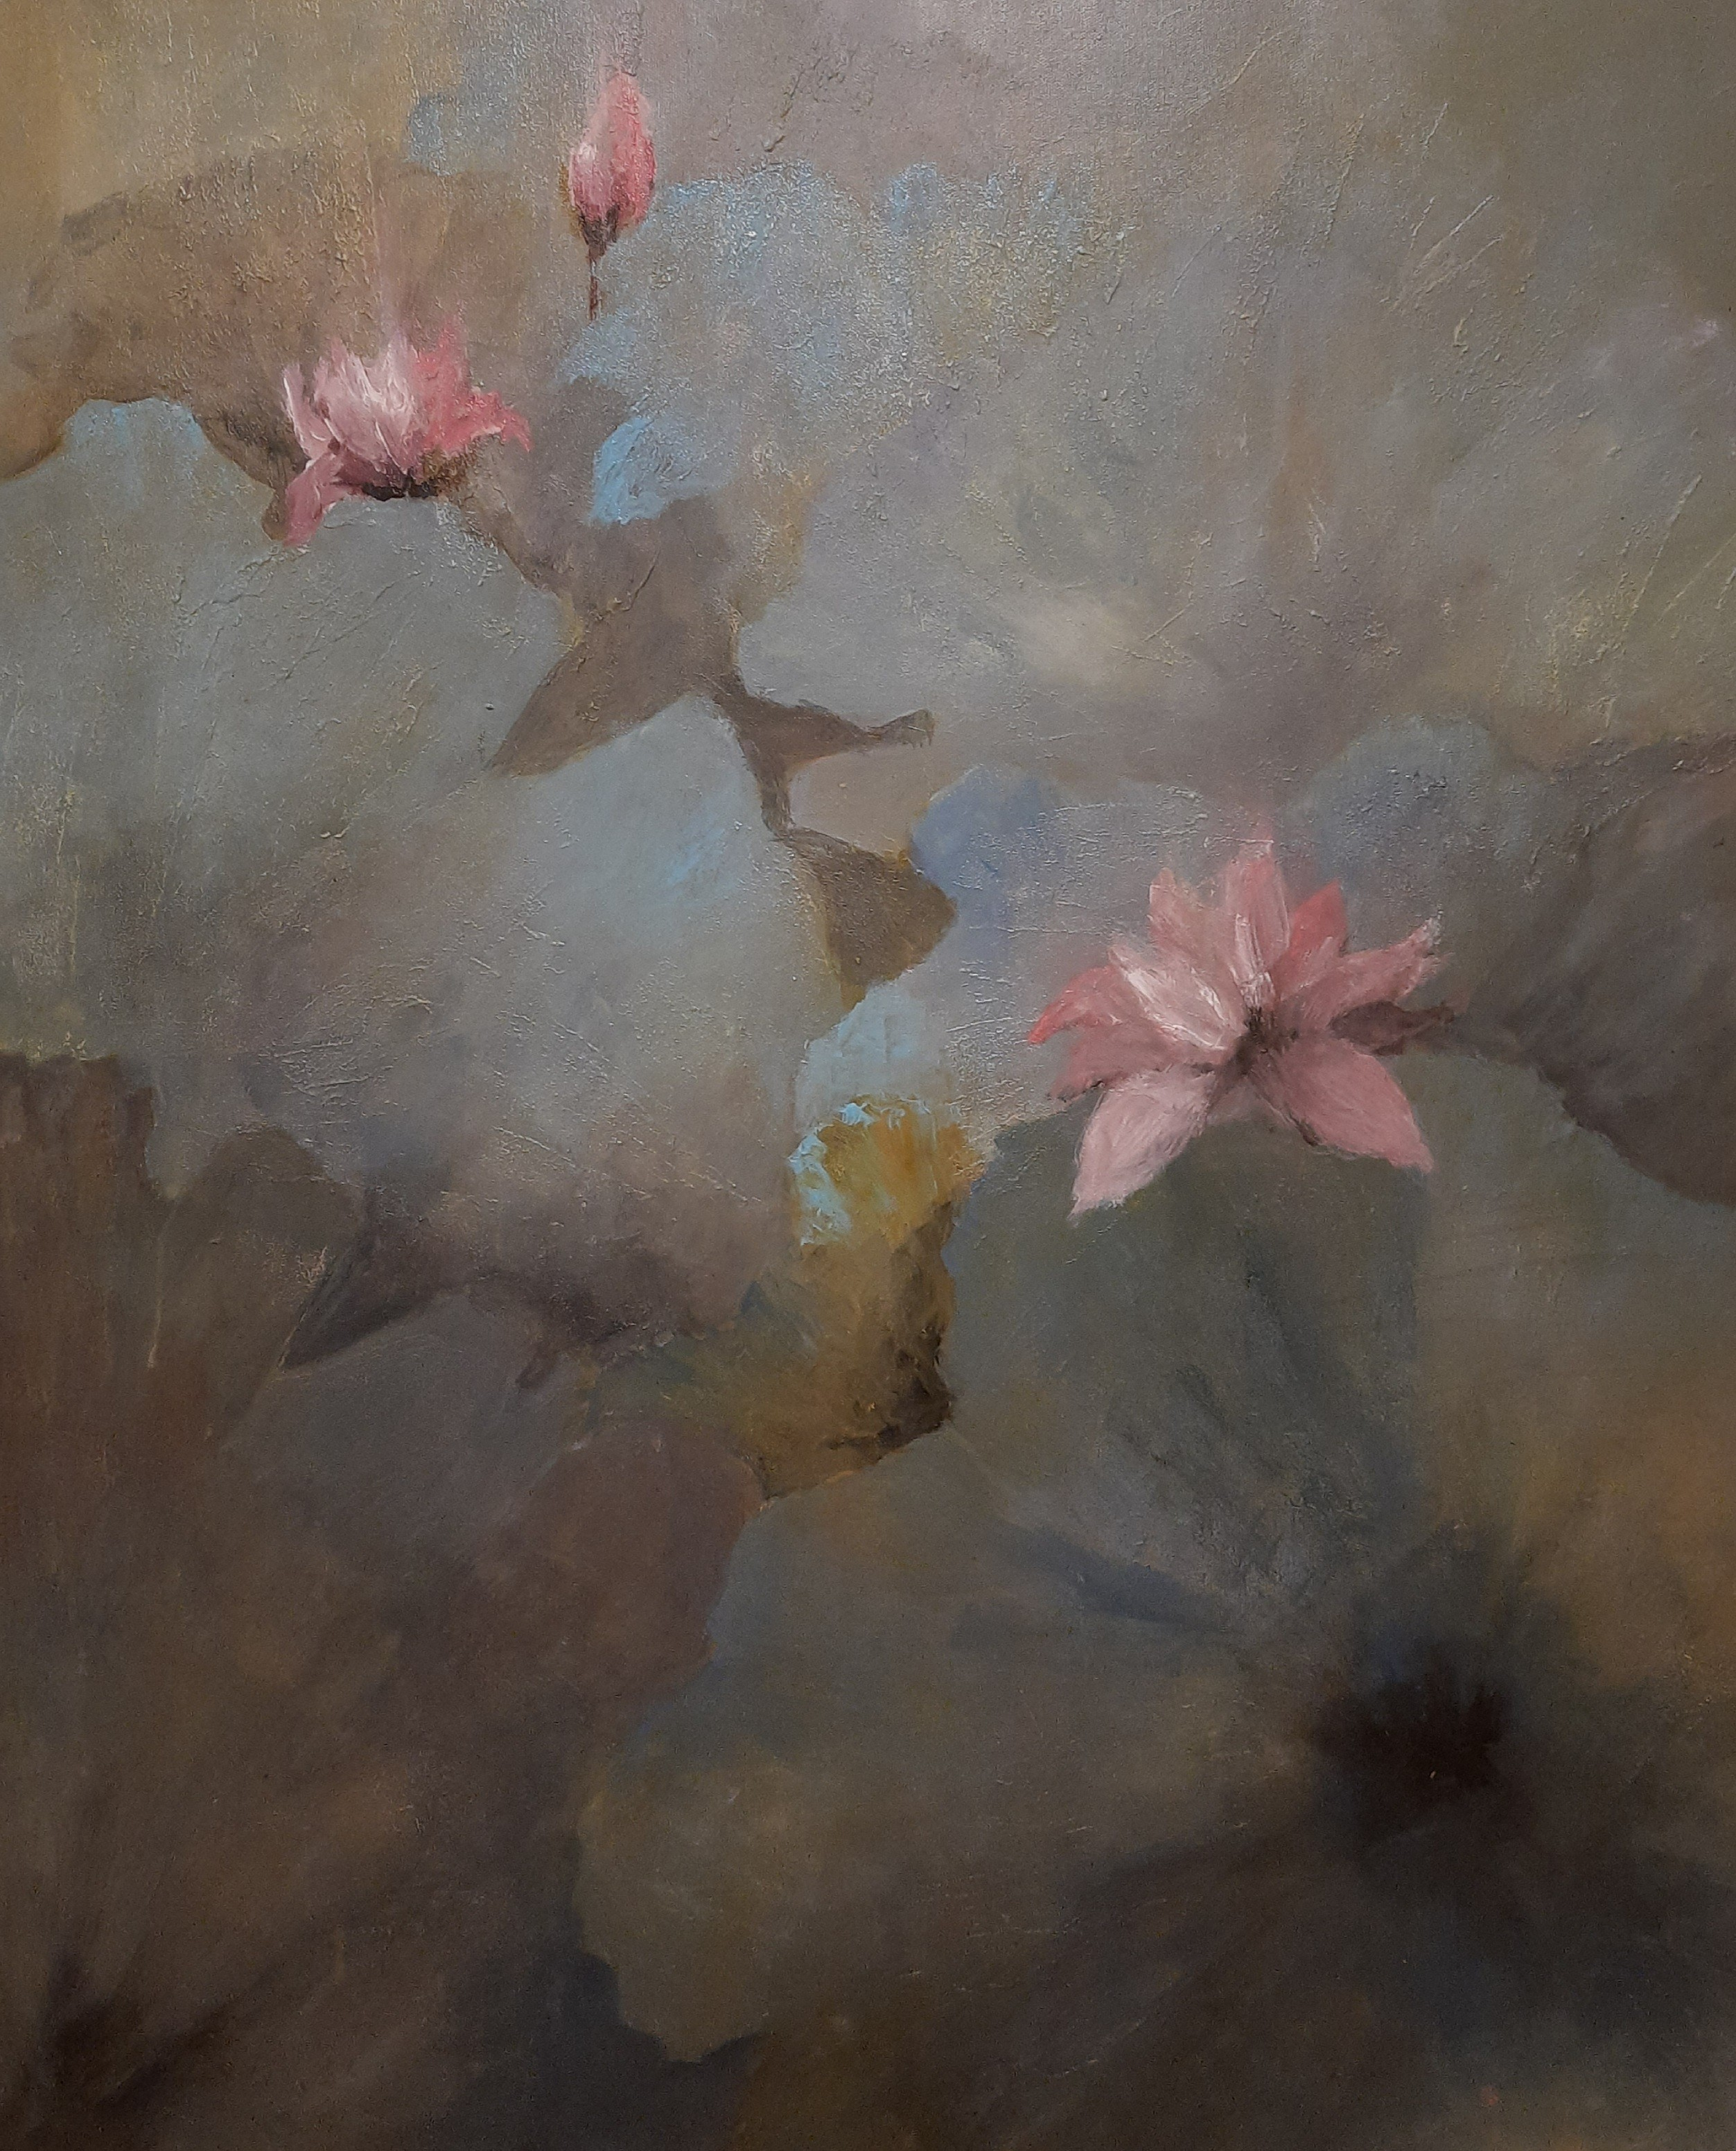 Shades of nature by Jean wijesekera